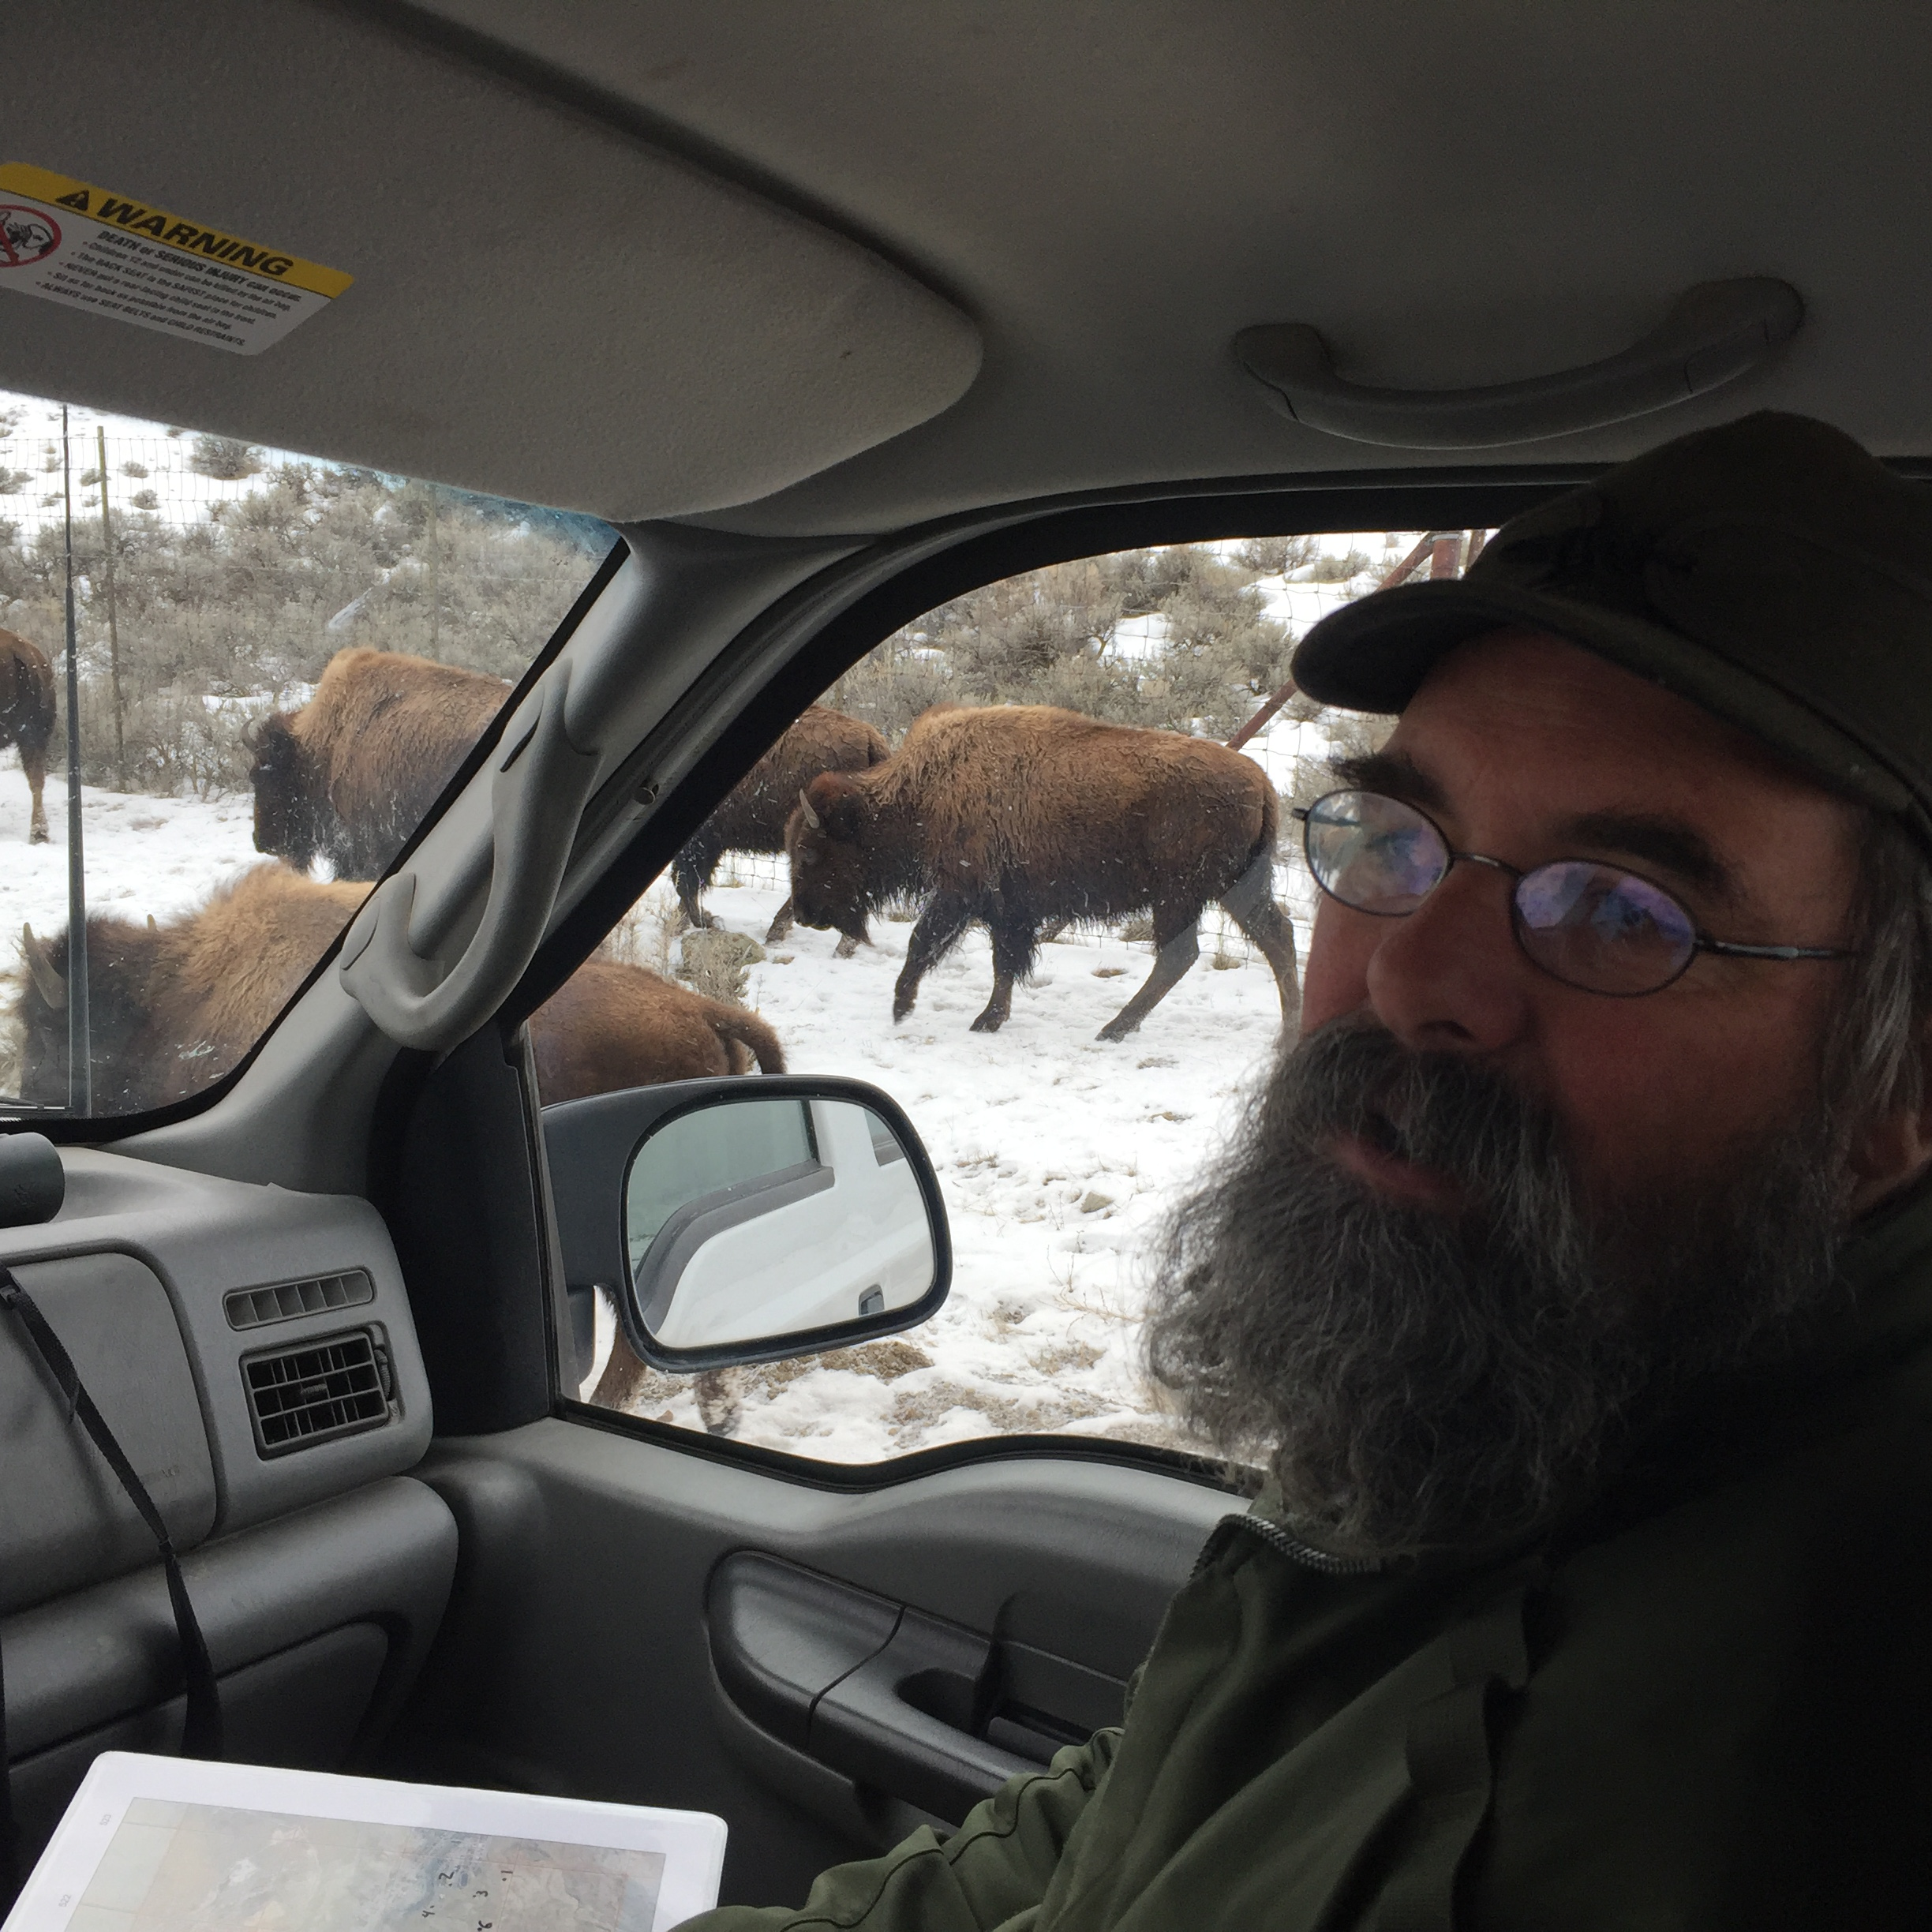 Rick Wallen is the Bison Project Leader at Yellowstone National Park.